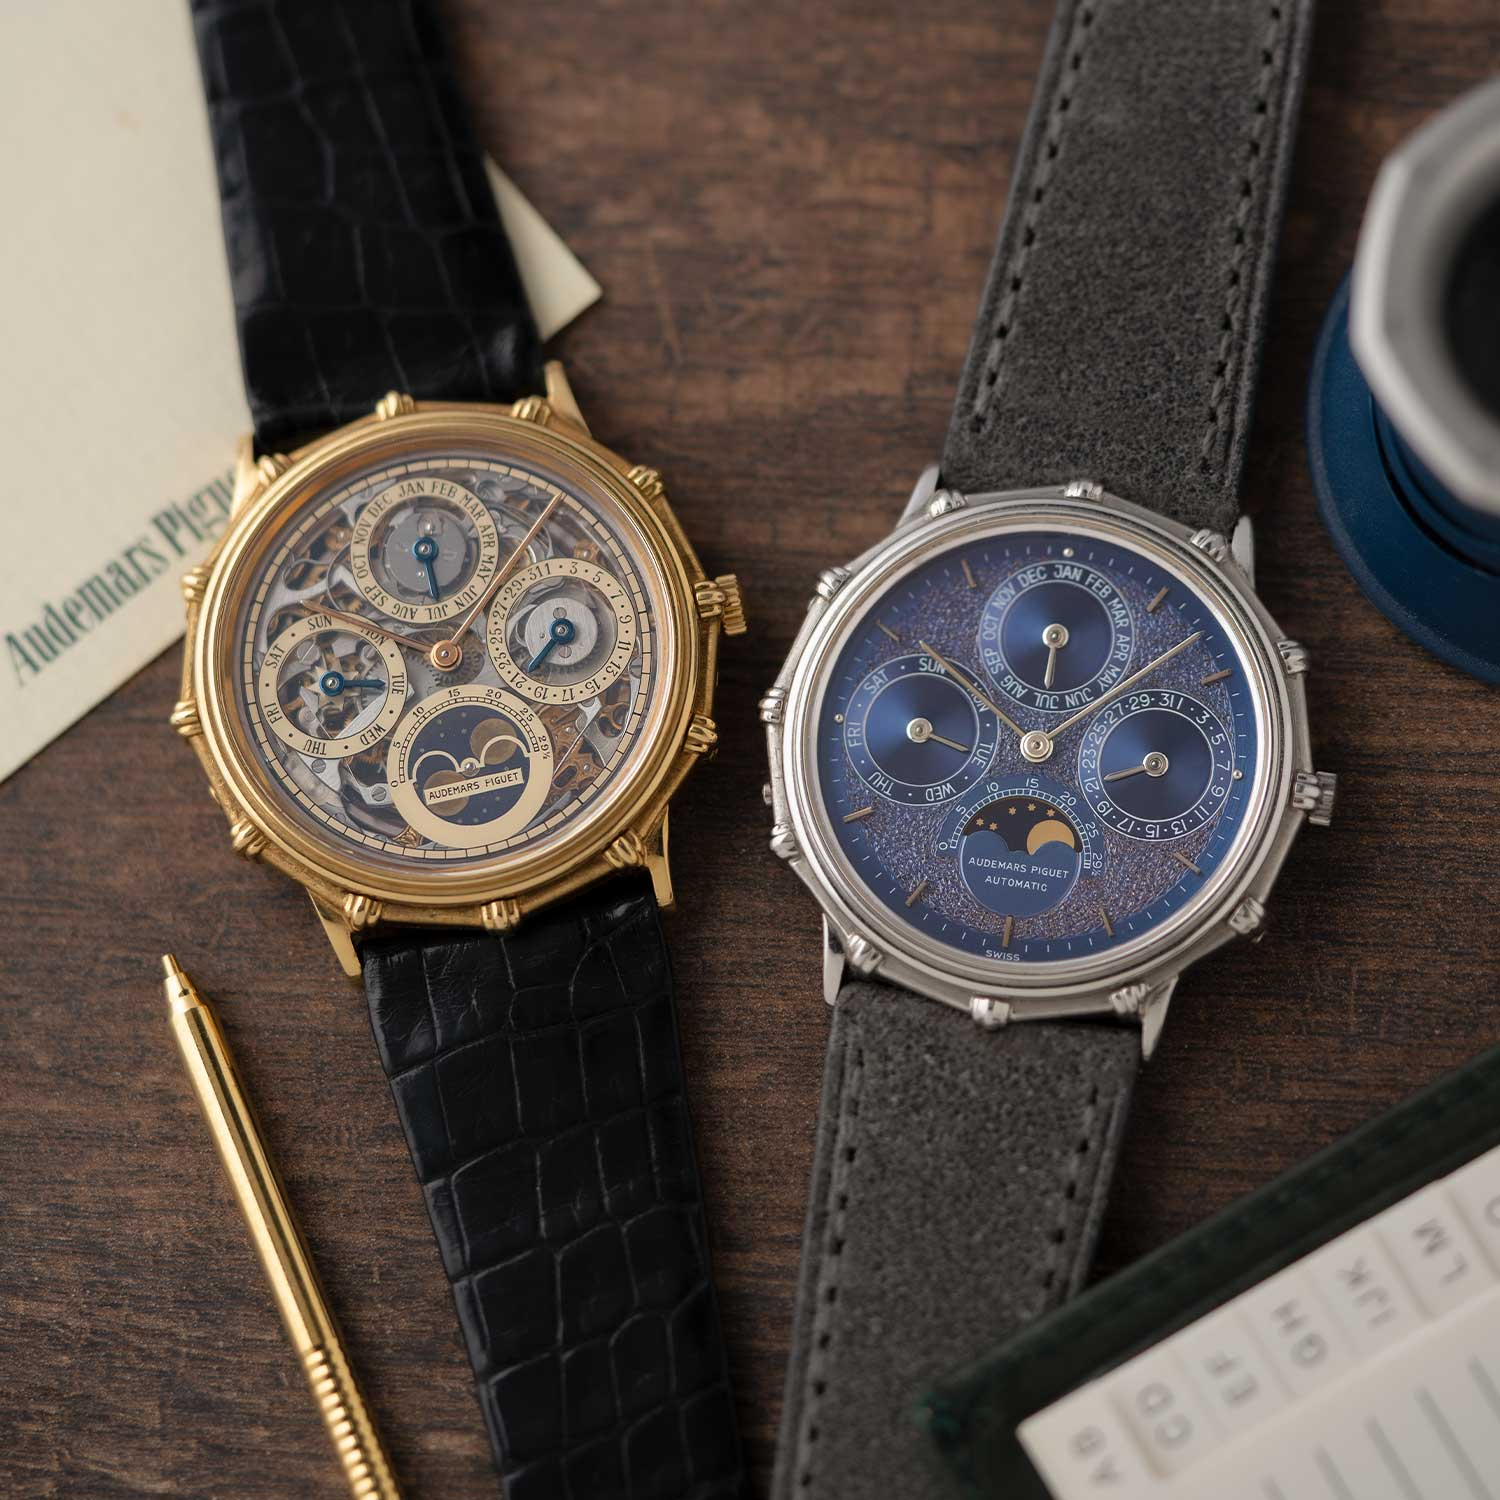 "More special creations derived from the 5548 family, on the left the 25586BA in yellow gold with a skeletonized dial and on the right the 25561PT in platinum with a ""Tuscan"" dial; the watches seen here are presently part of the Pygmalion Gallery's private collection (Image: Photo and watches, property of Pygmalion Gallery)"